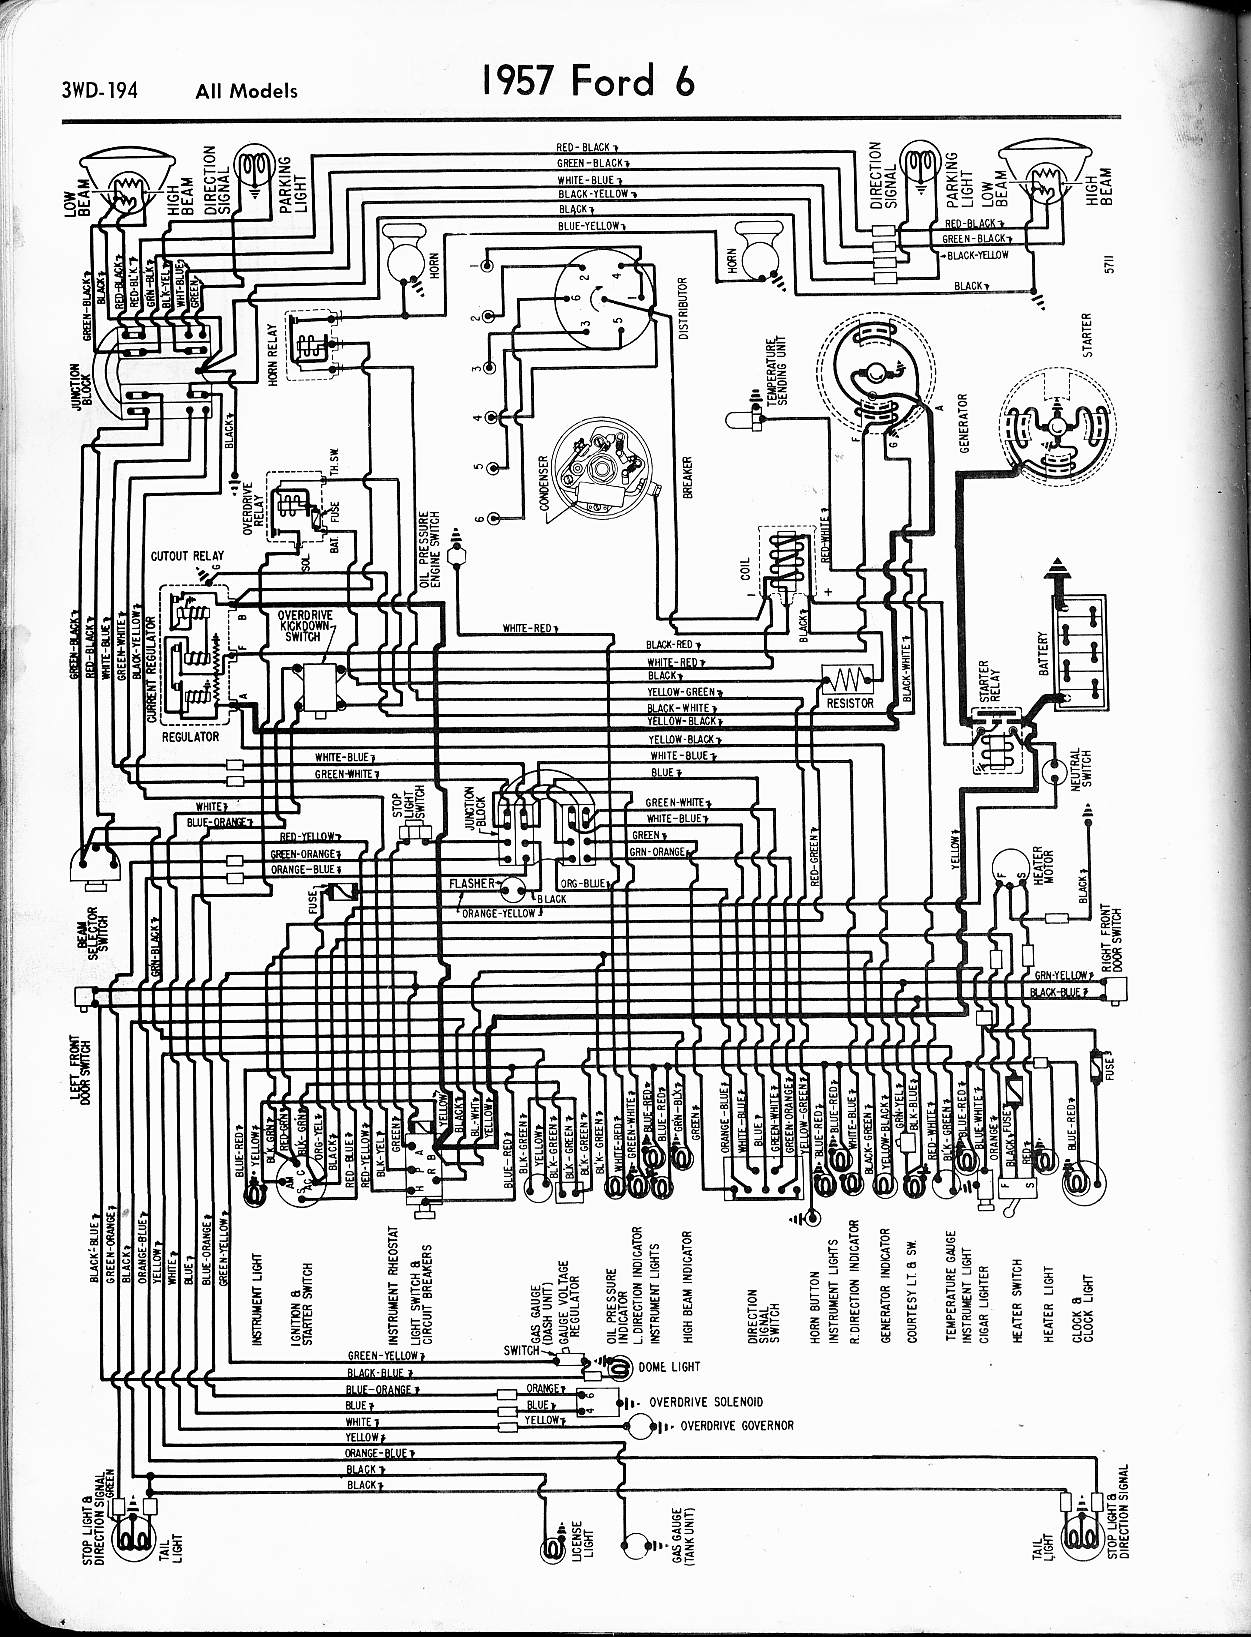 1959 ford wiring diagram wiring diagram todaysford 1959 ignition wiring wiring database library 1965 ford mustang wiring diagram 1957 ford ignition wiring